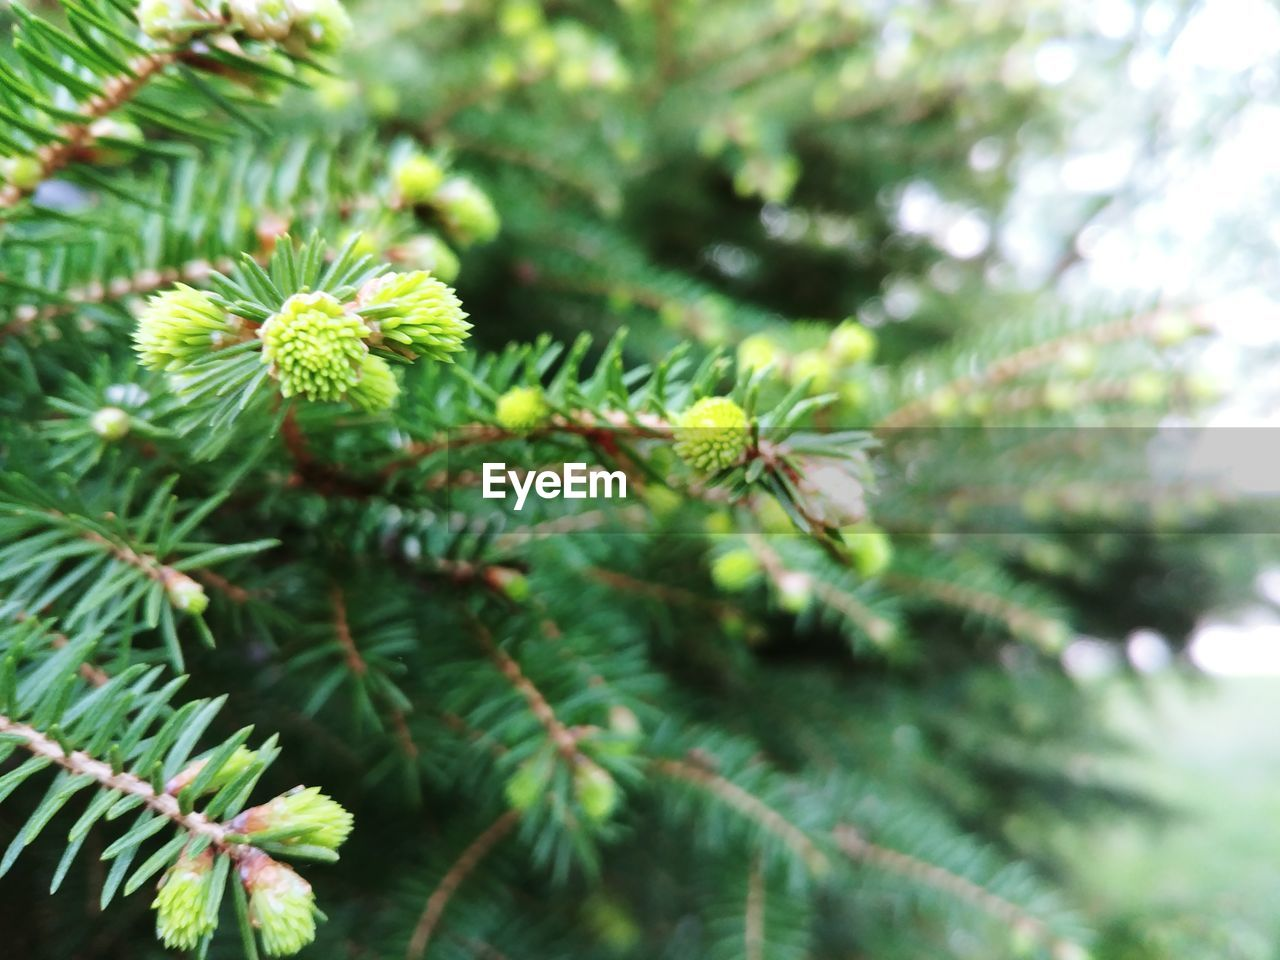 plant, growth, green color, tree, beauty in nature, day, close-up, no people, focus on foreground, nature, leaf, branch, plant part, pine tree, outdoors, tranquility, green, selective focus, freshness, coniferous tree, needle - plant part, spiky